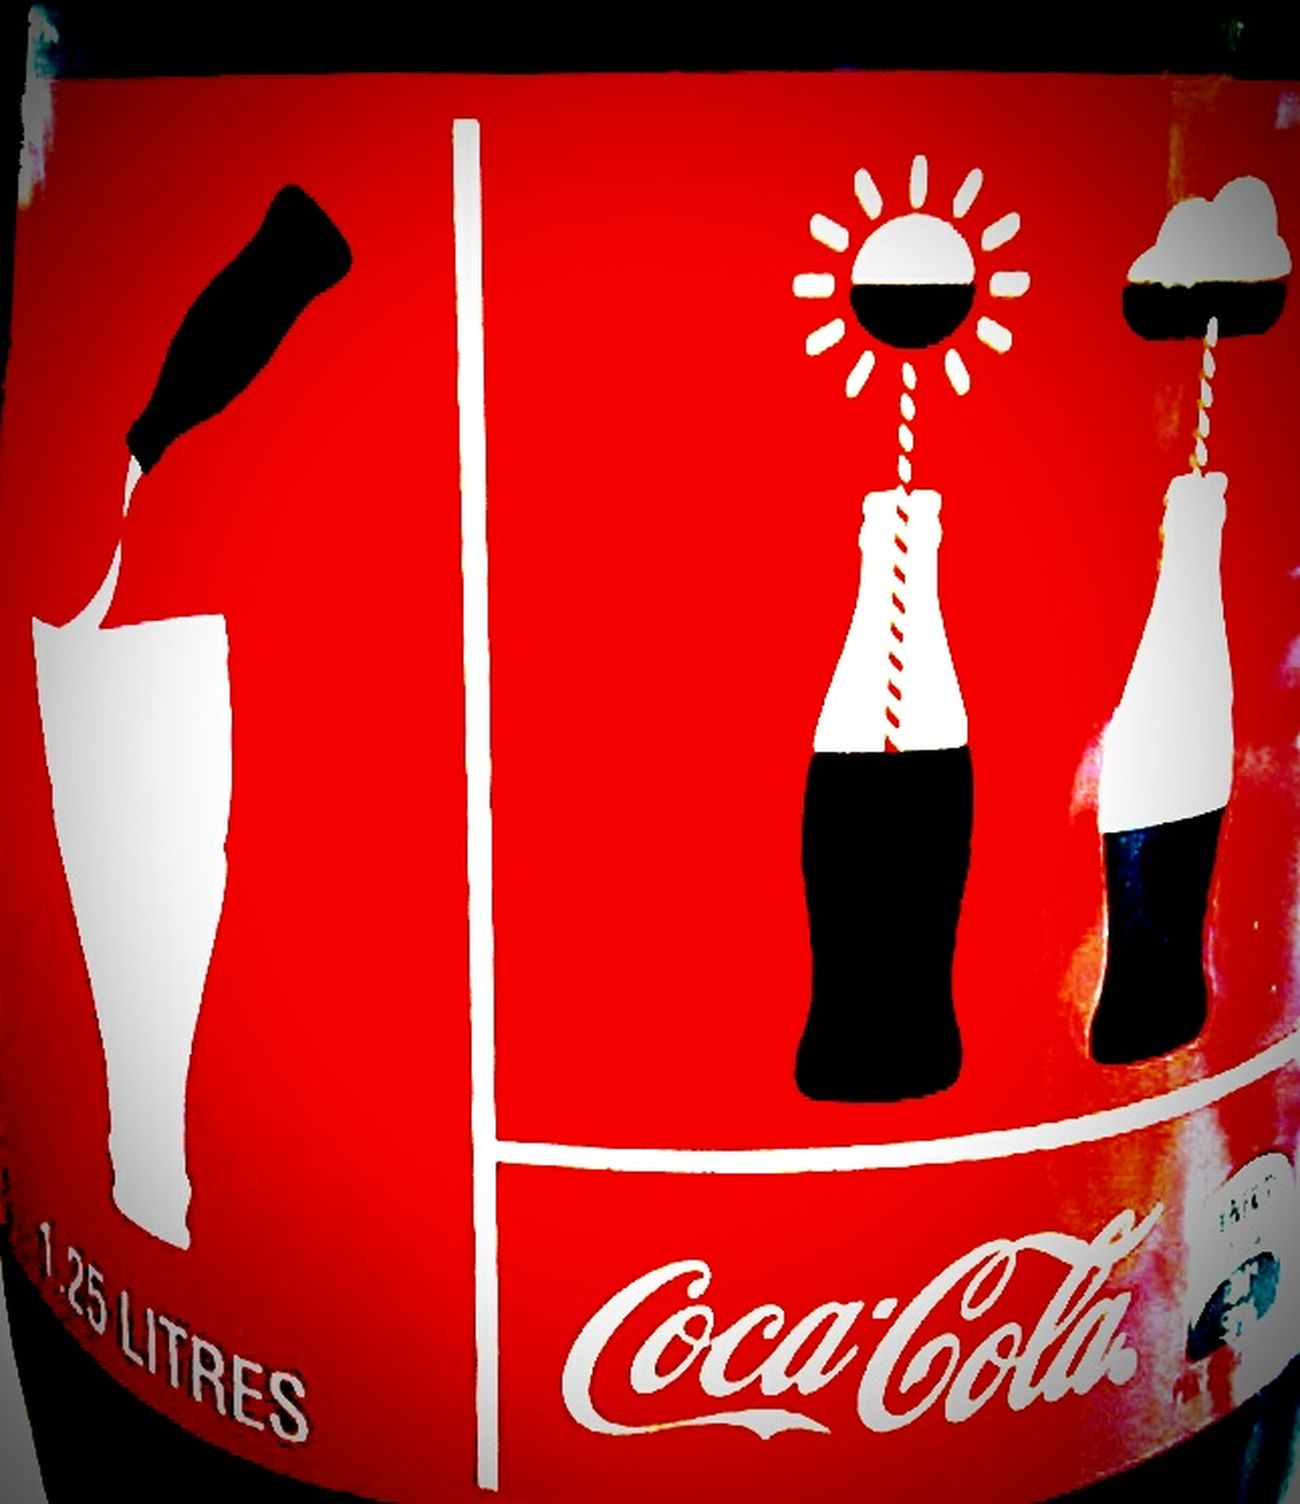 Coke The Dynamic Ribbon™ Coca~Cola ® Coca Cola Coca~cola Cocacola Coca-cola Coca Cola ✌ Coca~Cola Labeling Drinking Coke Coca-Cola, Label/logo/sign Coca Cola *-* Coca-Cola ❤ Refreshing Coca-cola